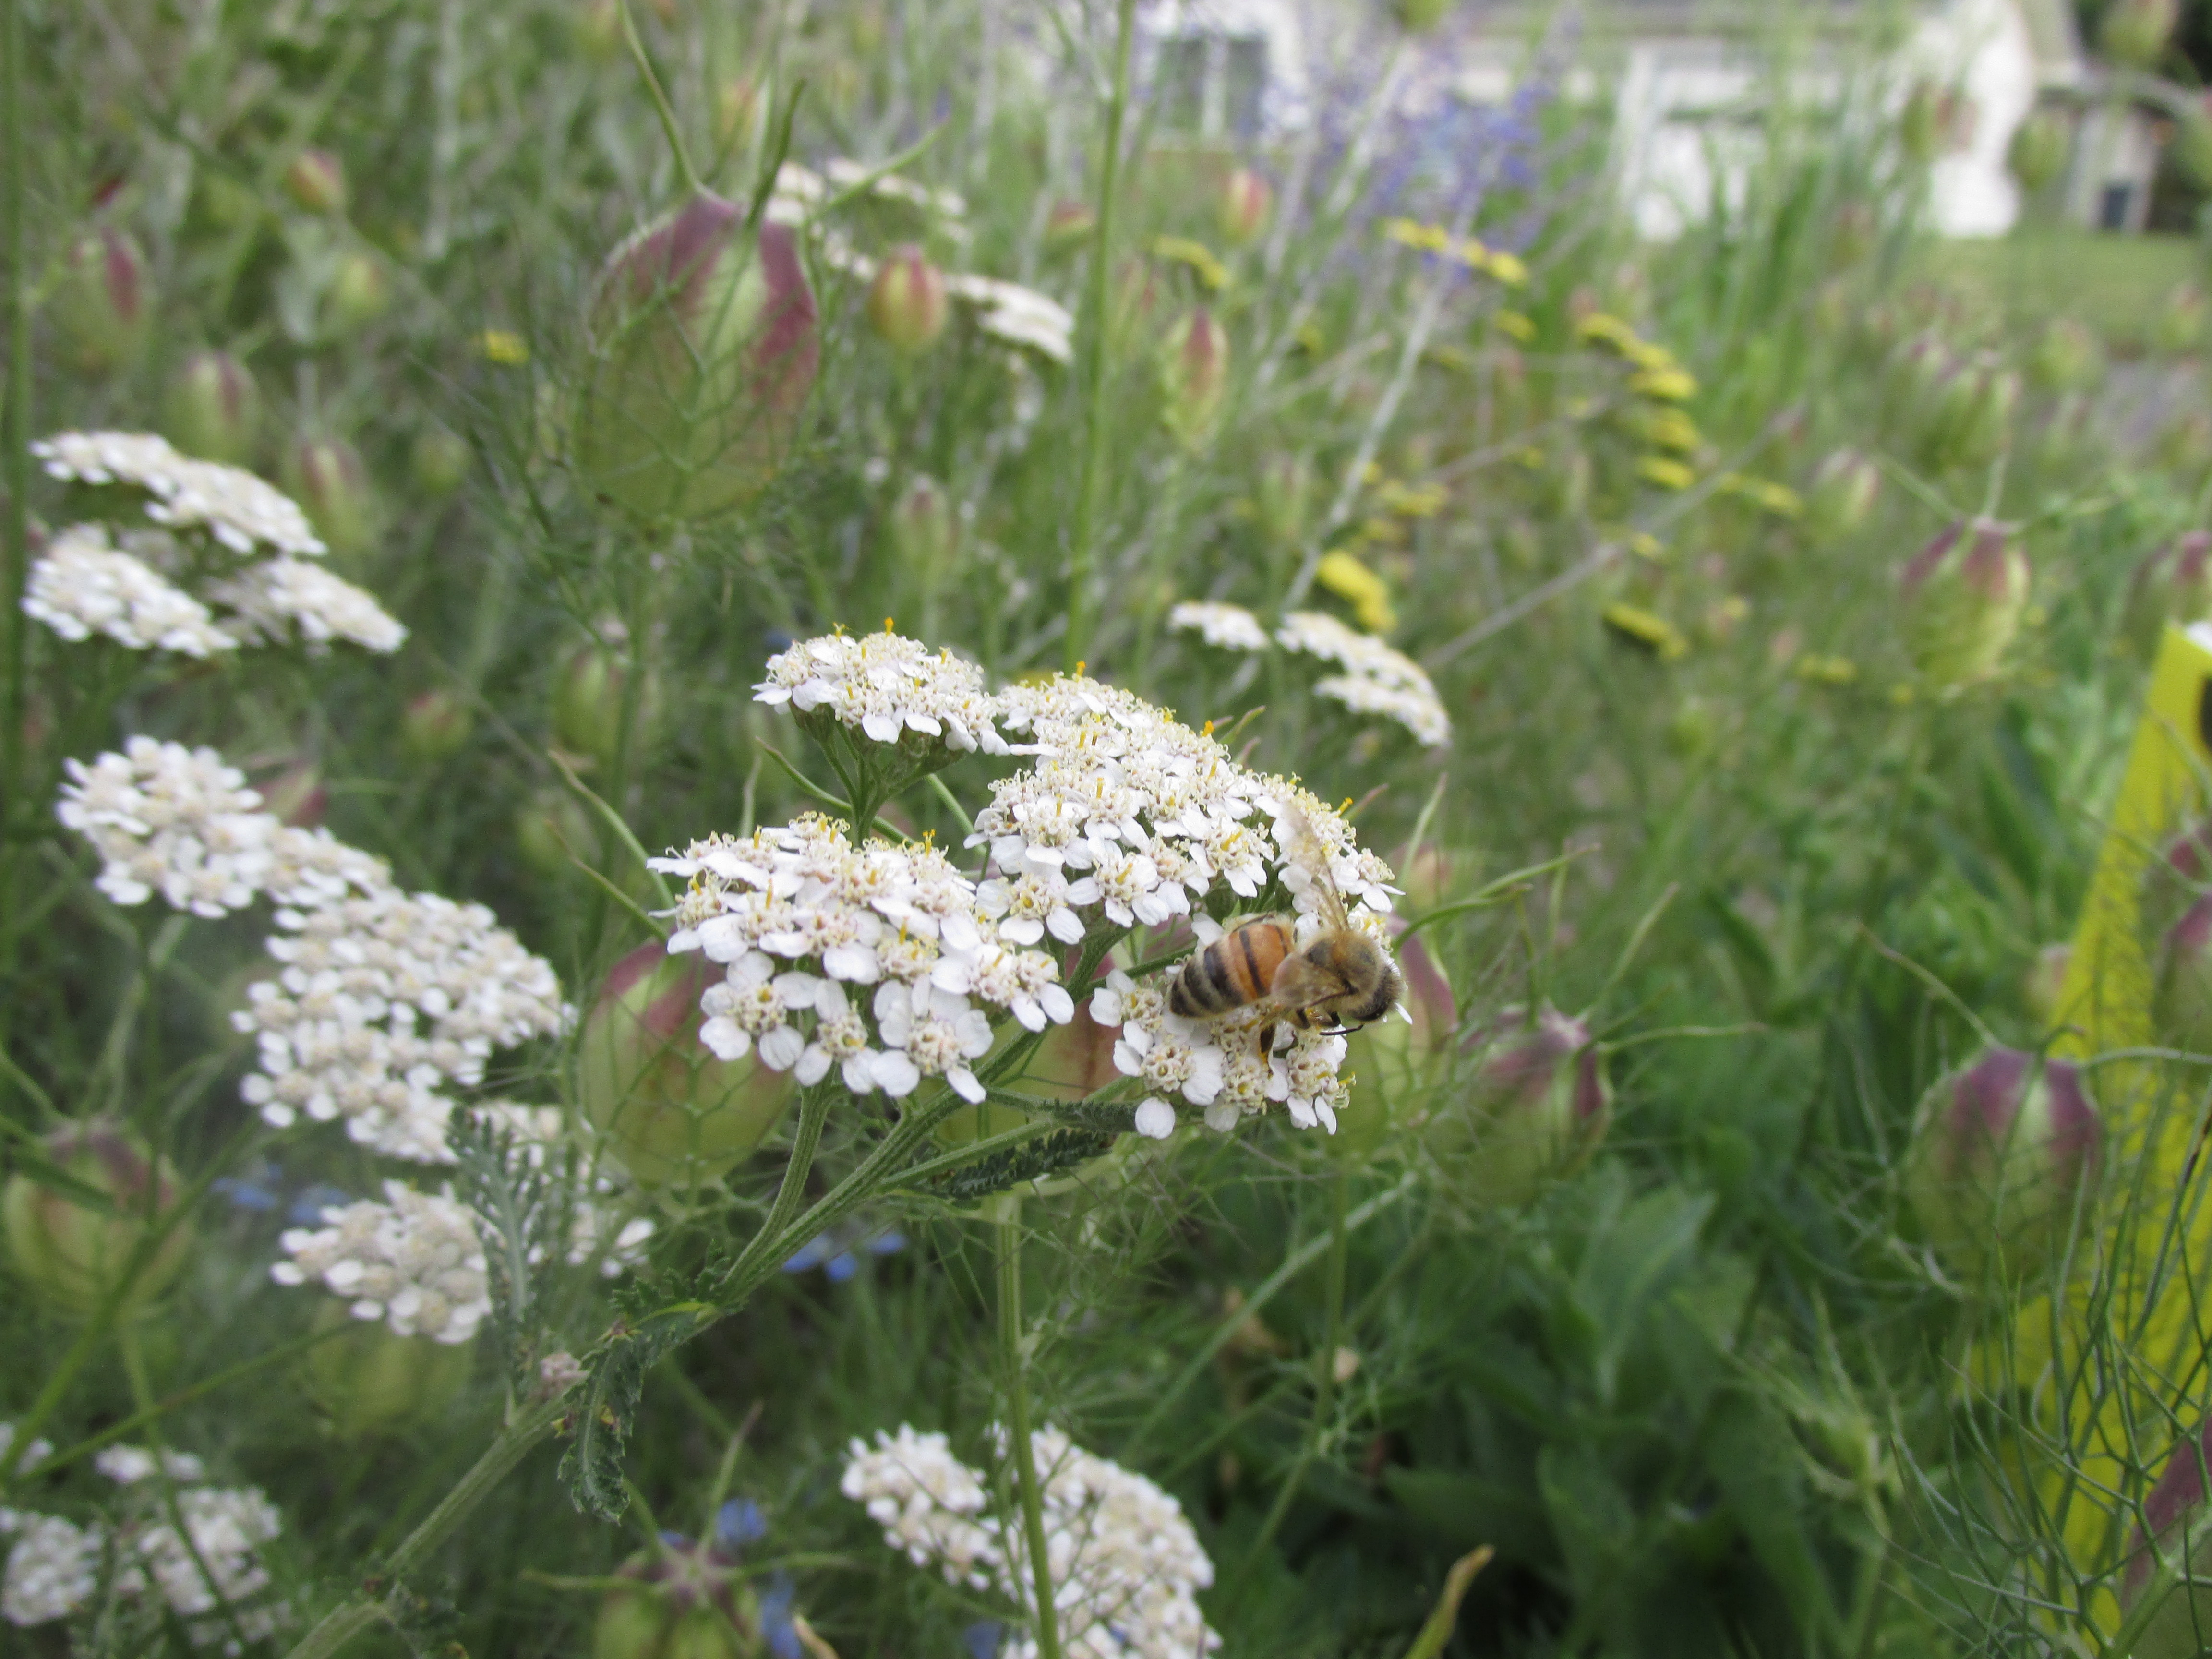 Pollinator on white yarrow